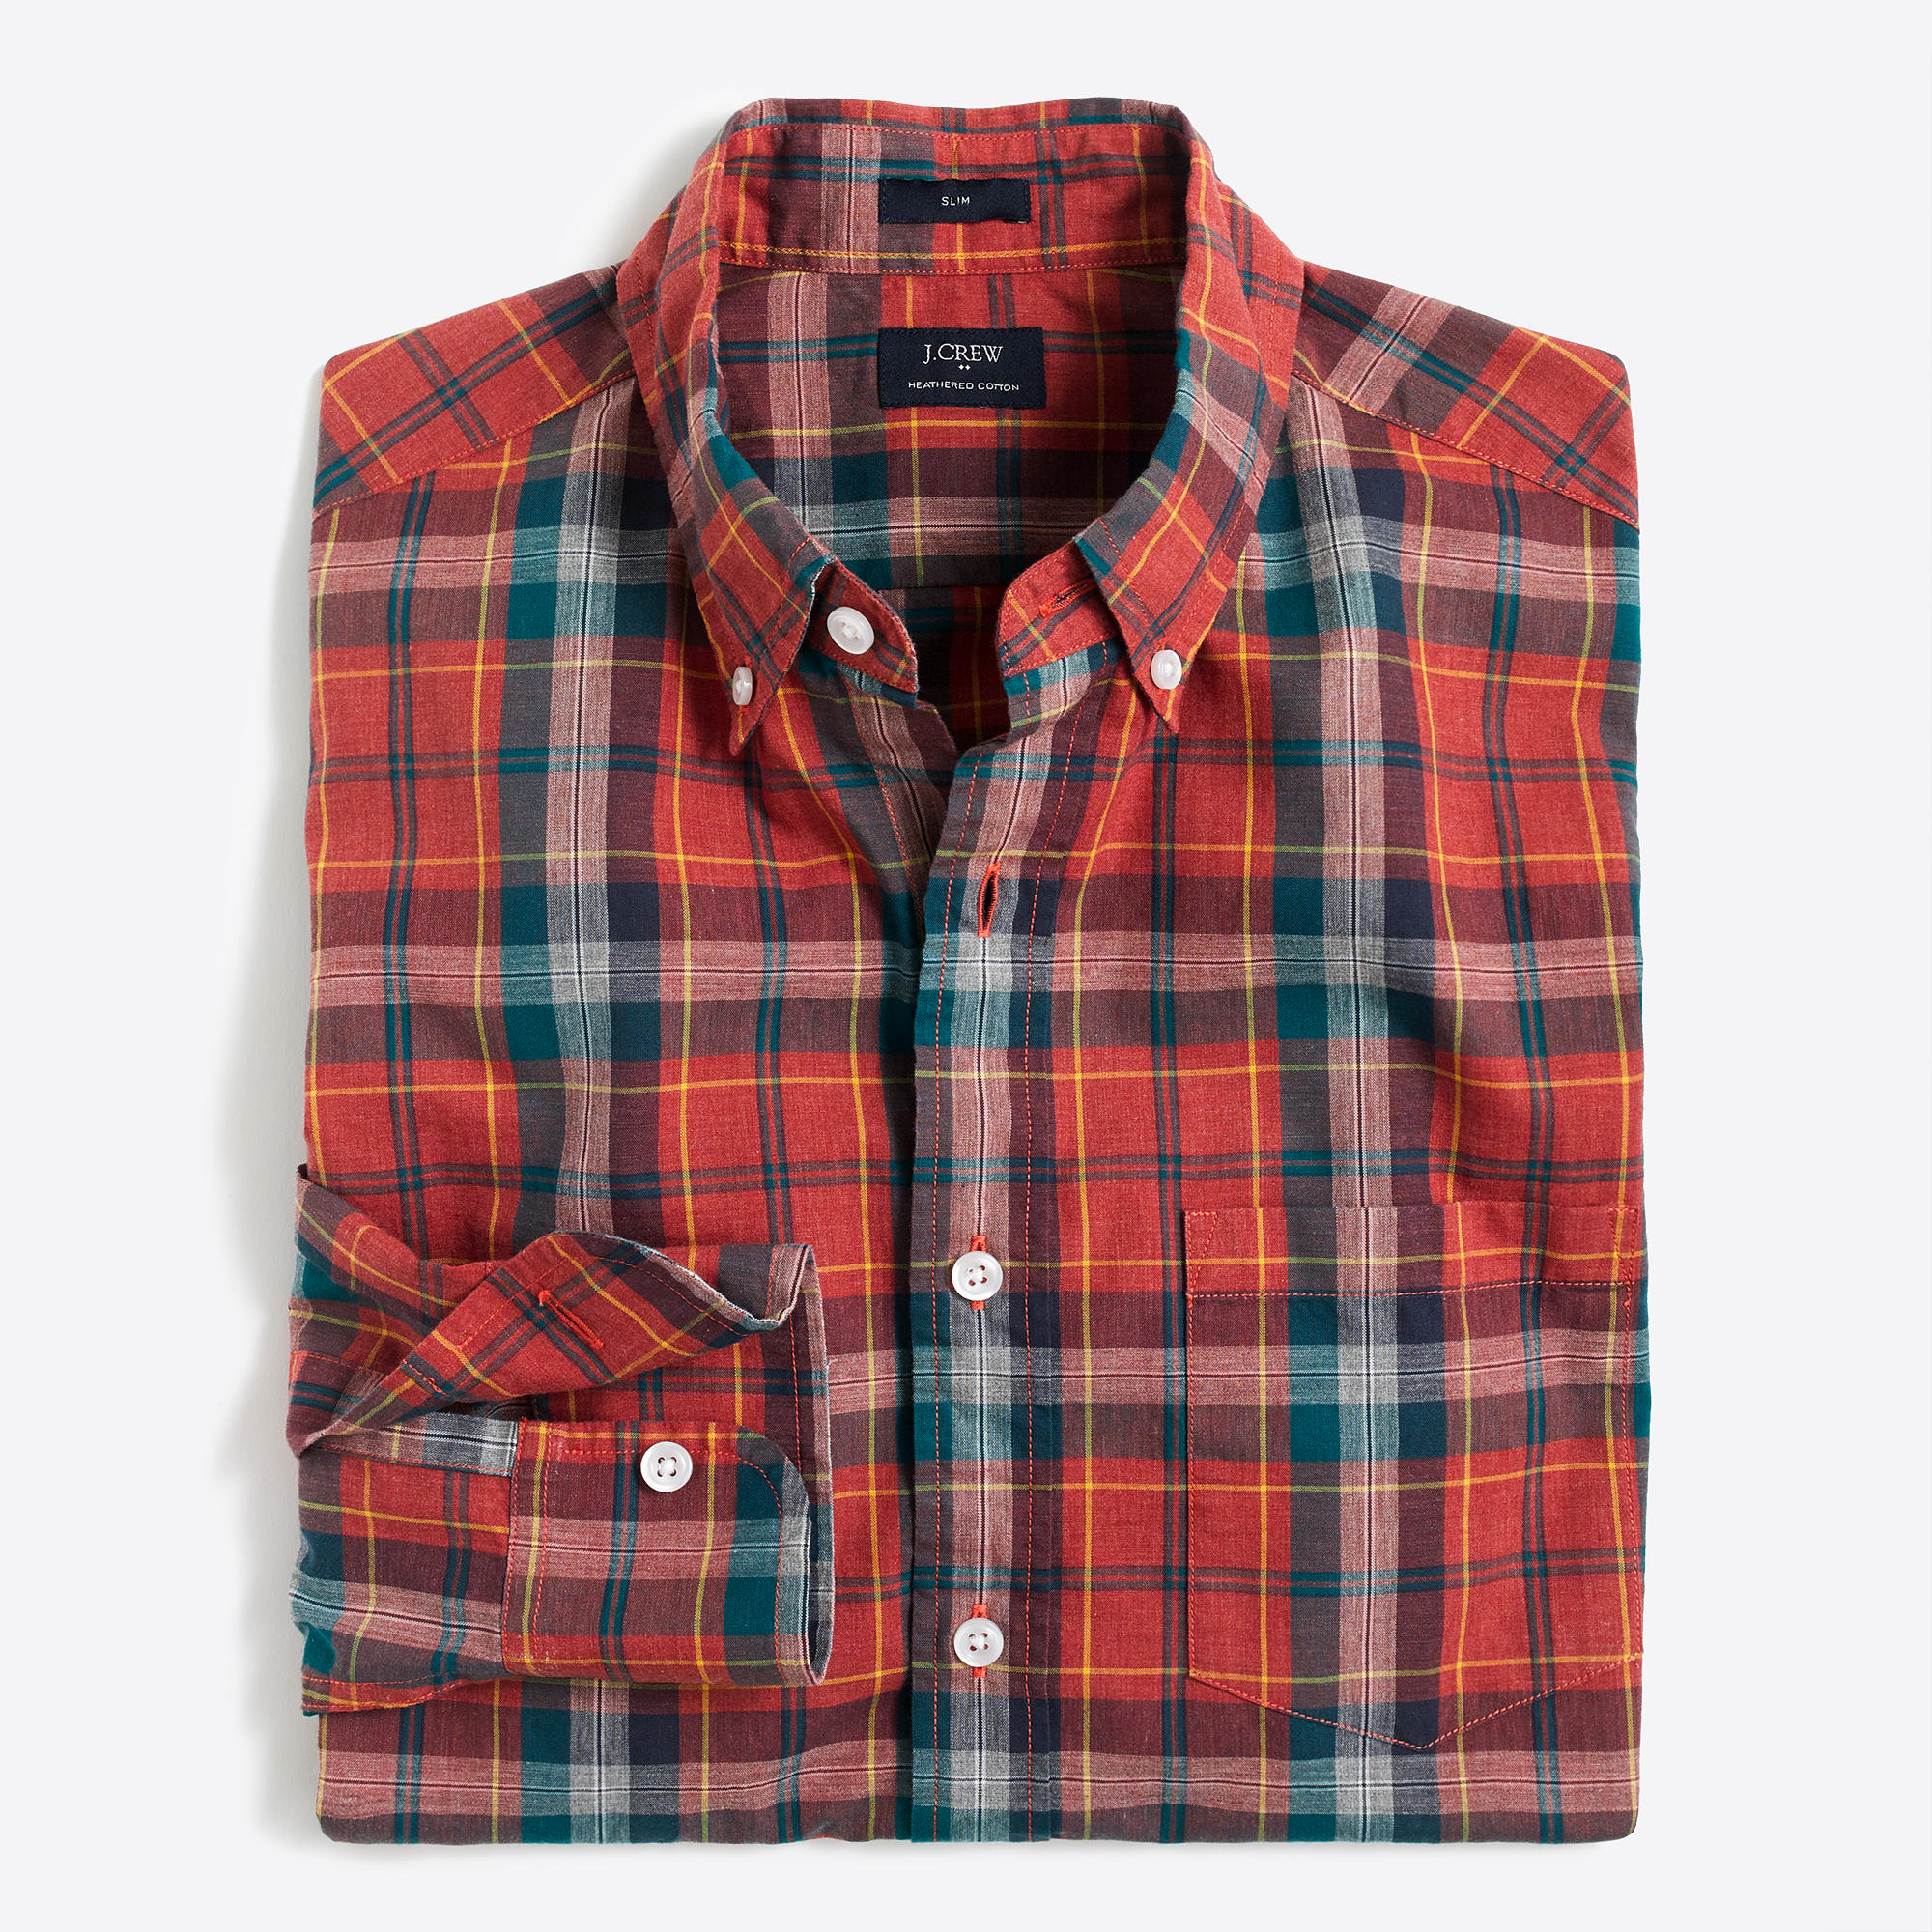 Slim heather washed plaid shirt factorymen shirts factory for Mixed plaid shirt mens